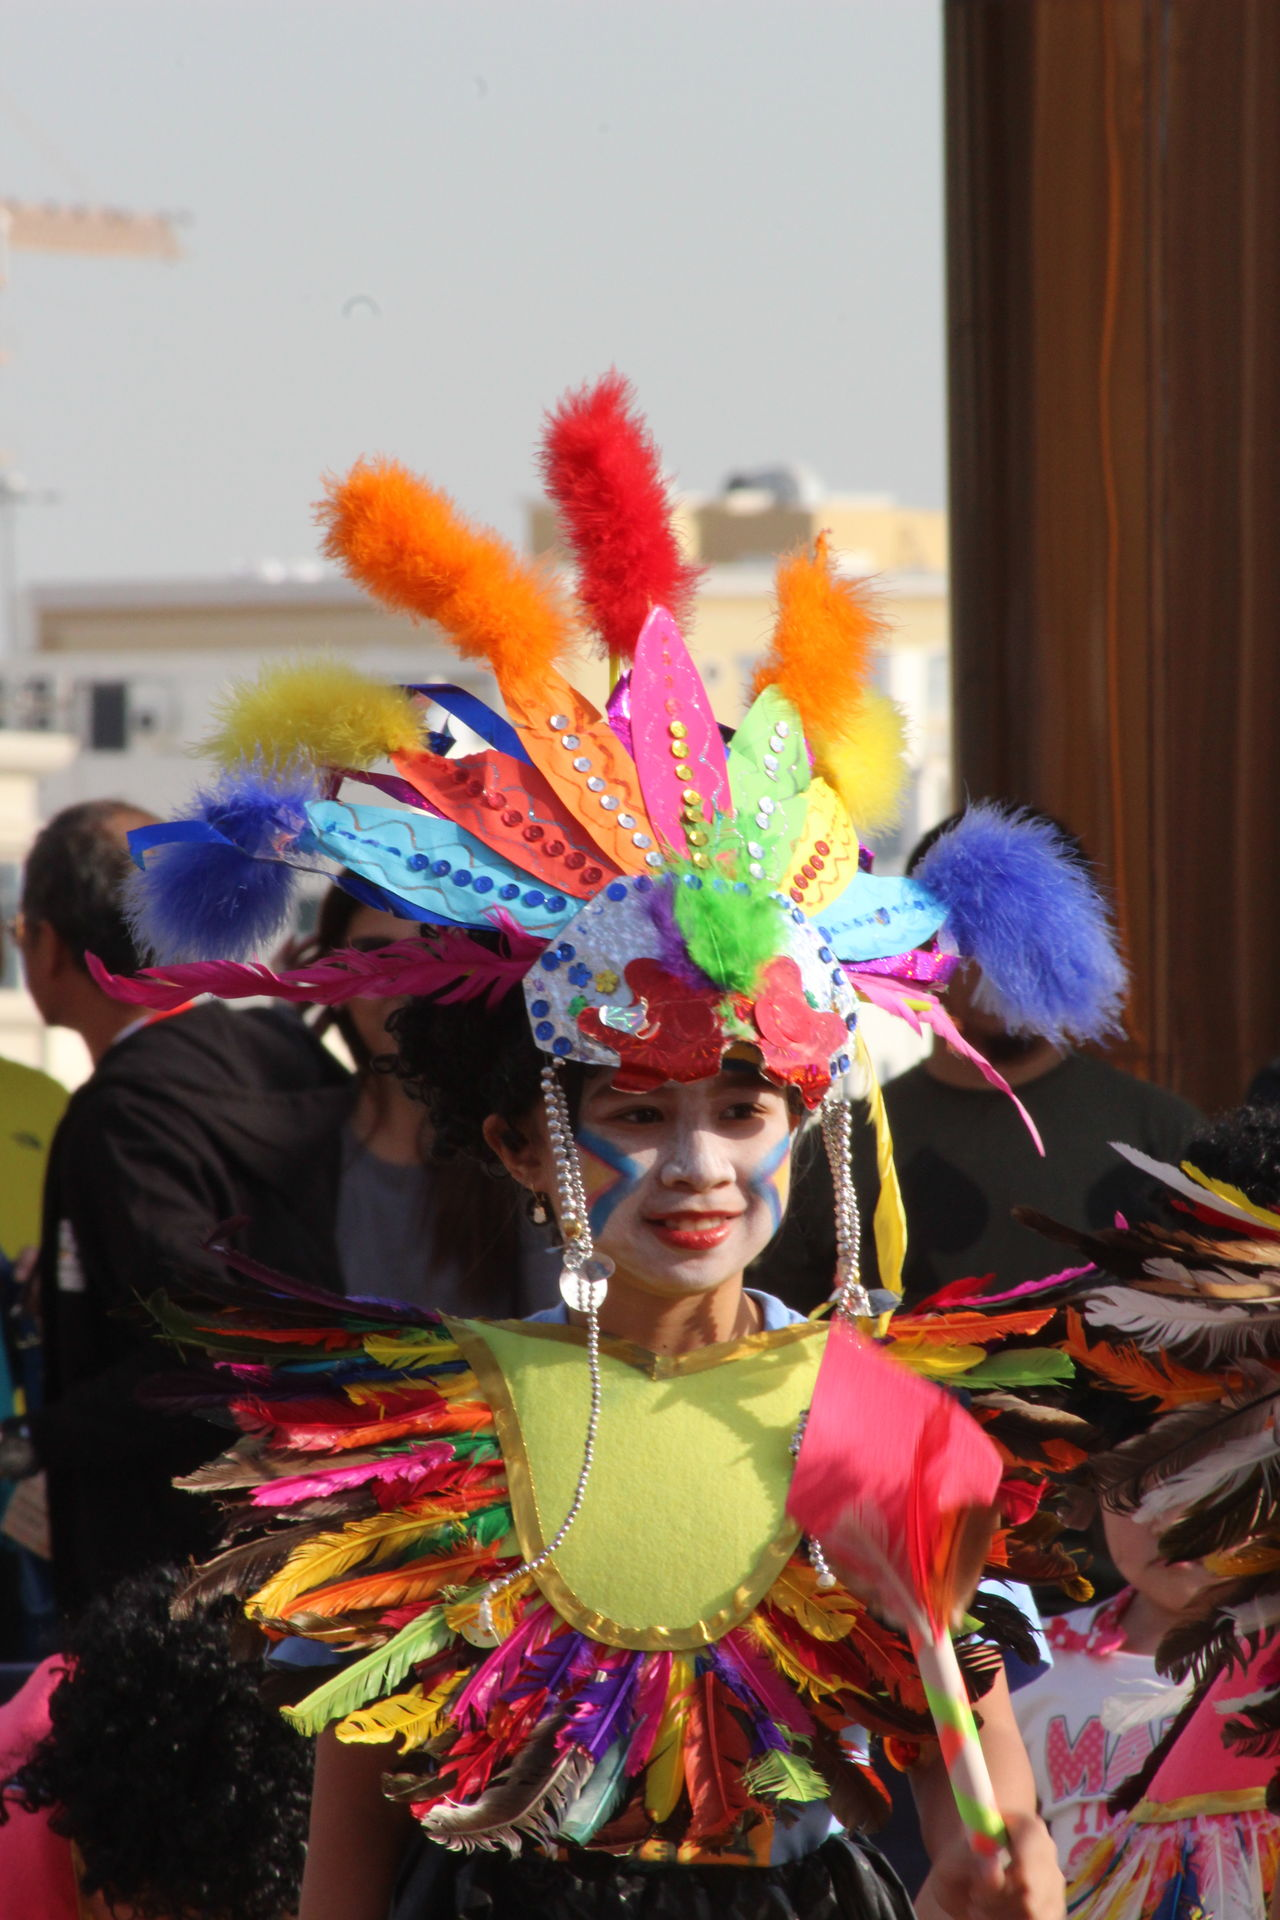 Multi Colored Celebration Arts Culture And Entertainment Cultures Real People Holiday - Event Lifestyles Fun Day People Outdoors Adult EyeEm Phillipines Performing Arts Event Colorful Eyeem Philippines Traditional Clothing Headdress Annual Event Eyeem Photo Portrait Close-up